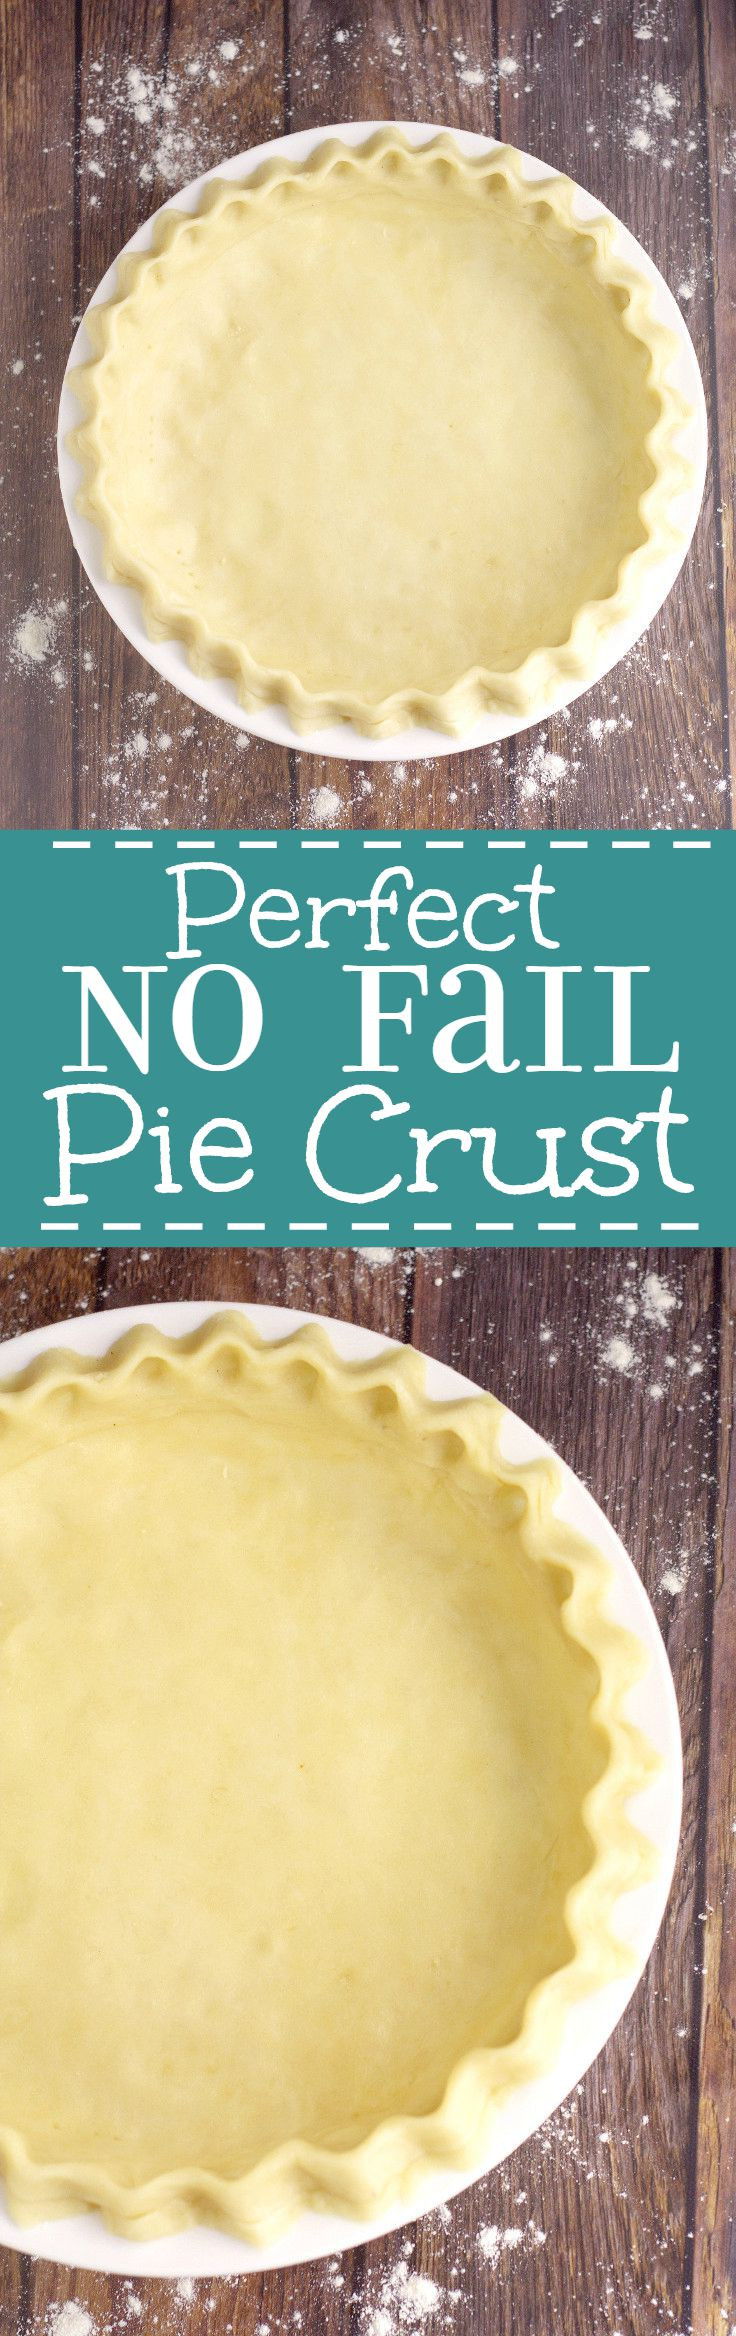 Pie Crust Recipes  pany s ing pie crust recipe